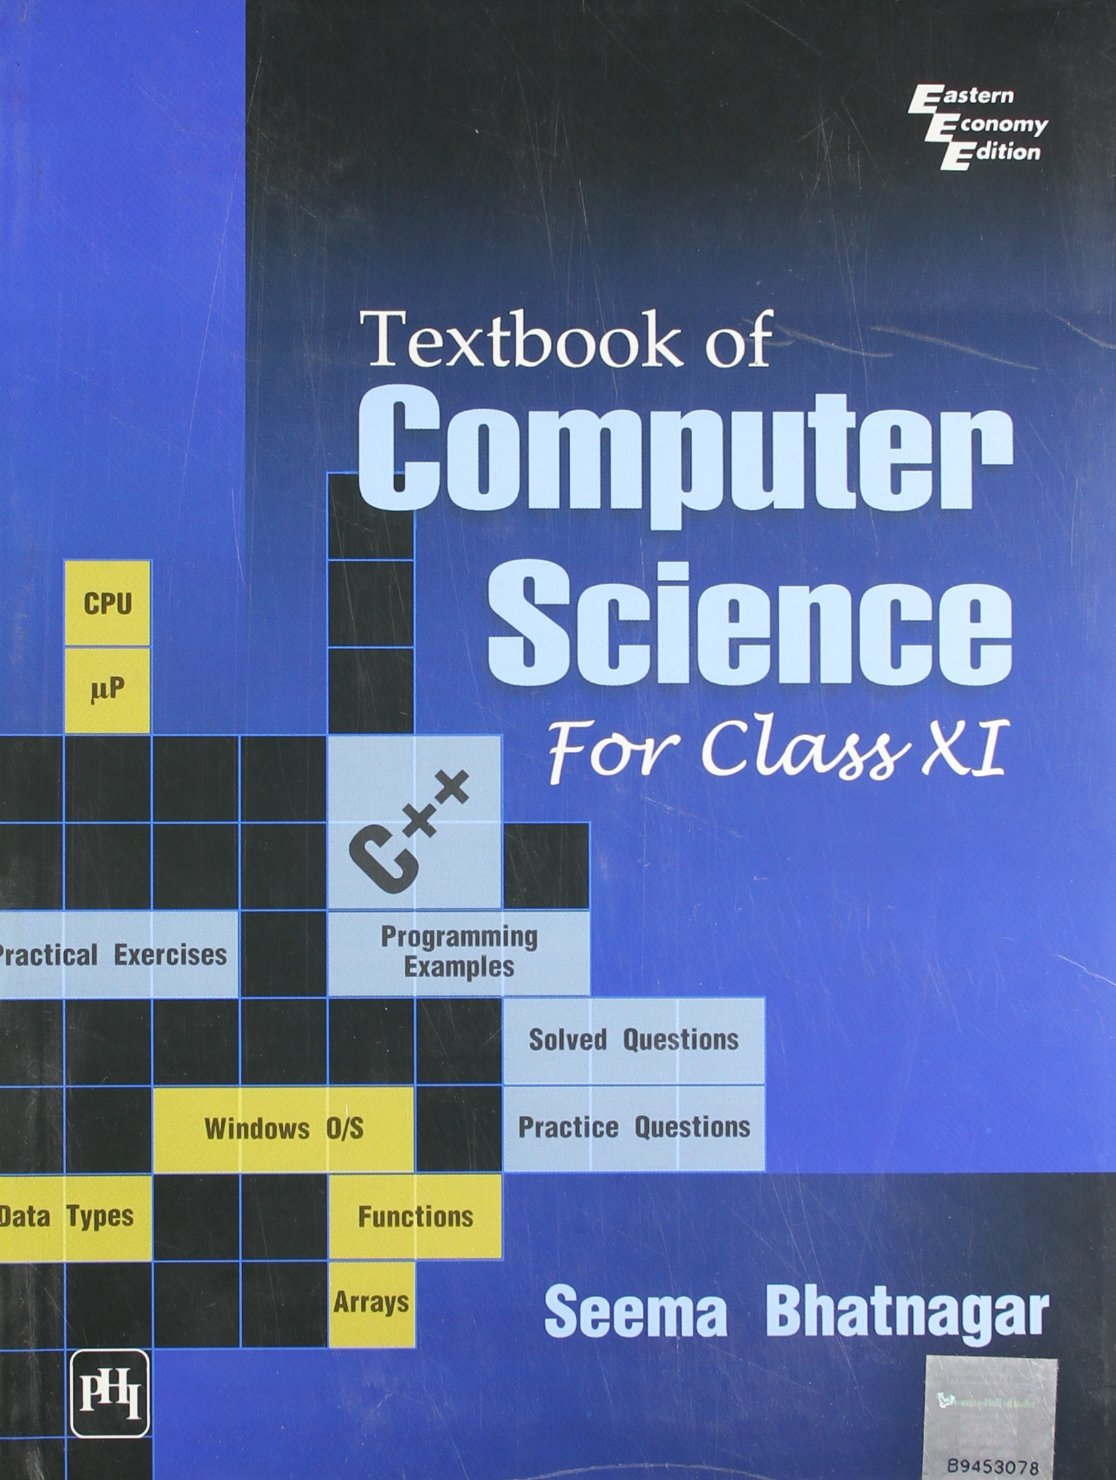 Buy Textbook of Computer Science: For Class XI Book Online